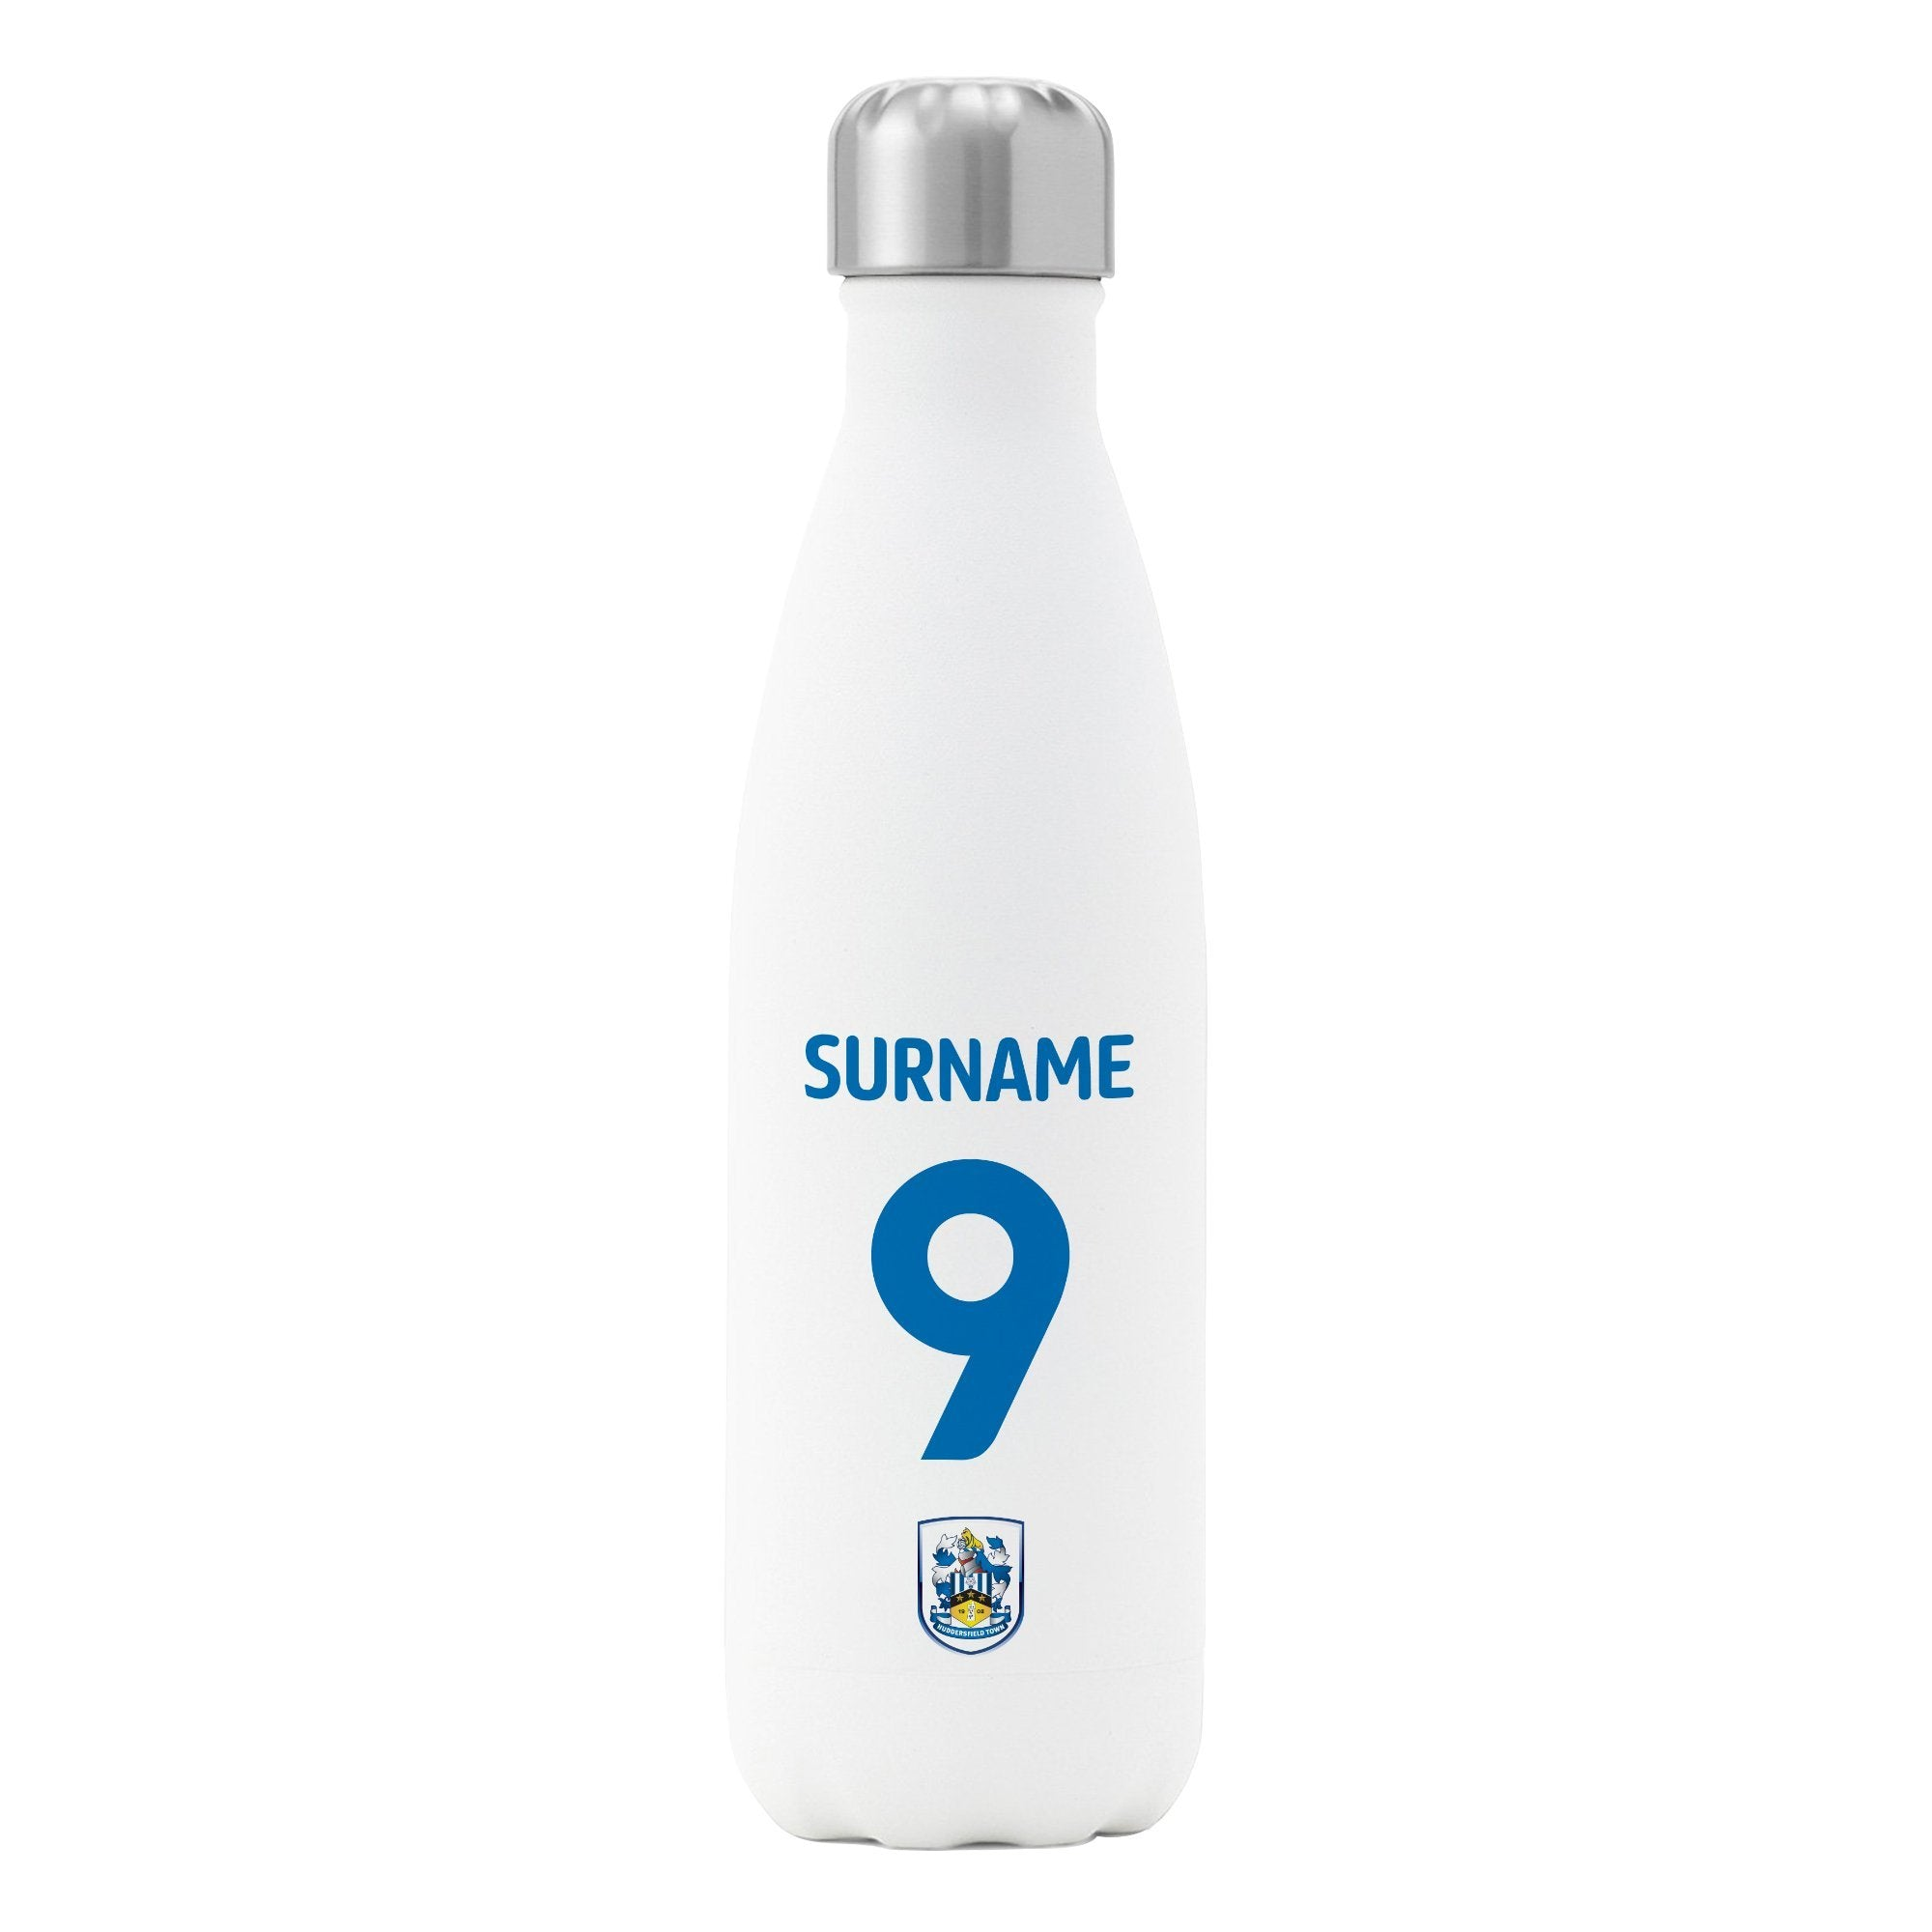 Personalised Huddersfield Town AFC Insulated Bottle Flask, Food & Beverage Carriers by Glamorous Gifts UK